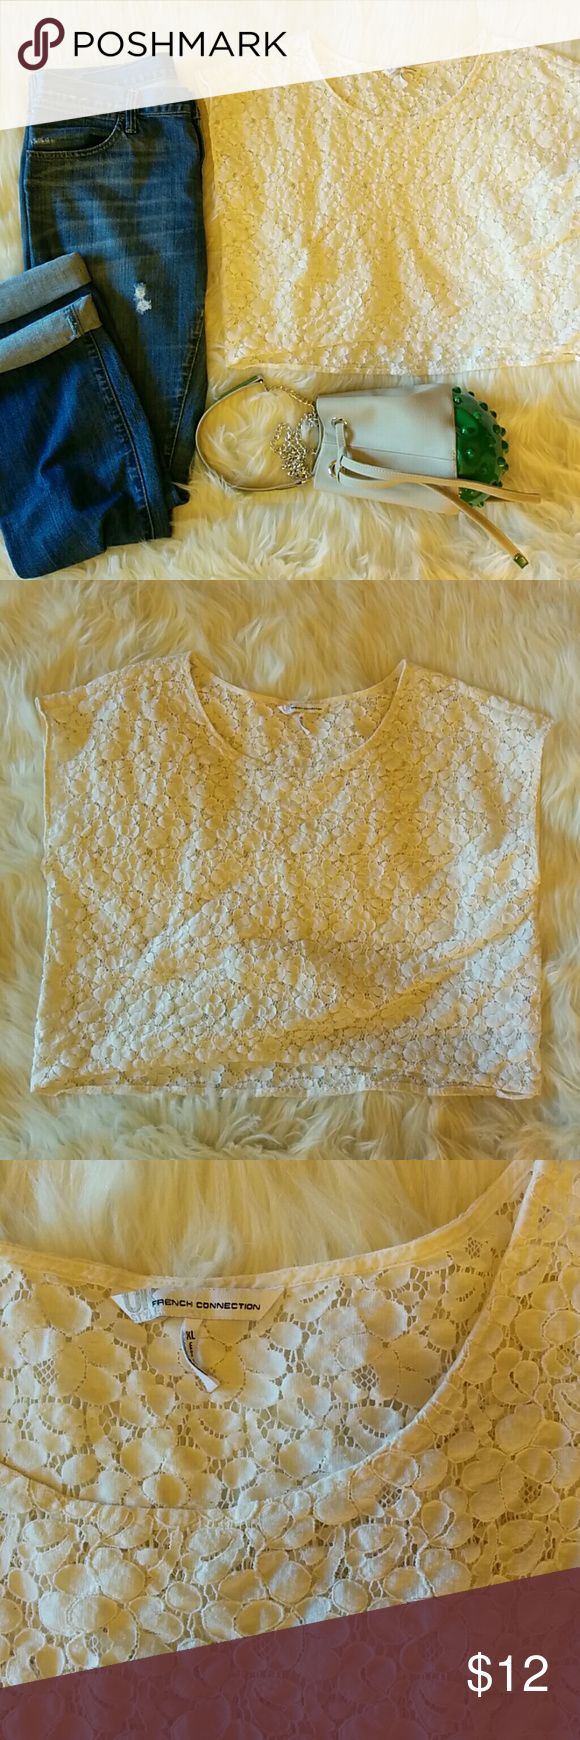 French Connection Crop Top Creamy white lace crop top by UK Style French Connection. French Connection Tops Crop Tops